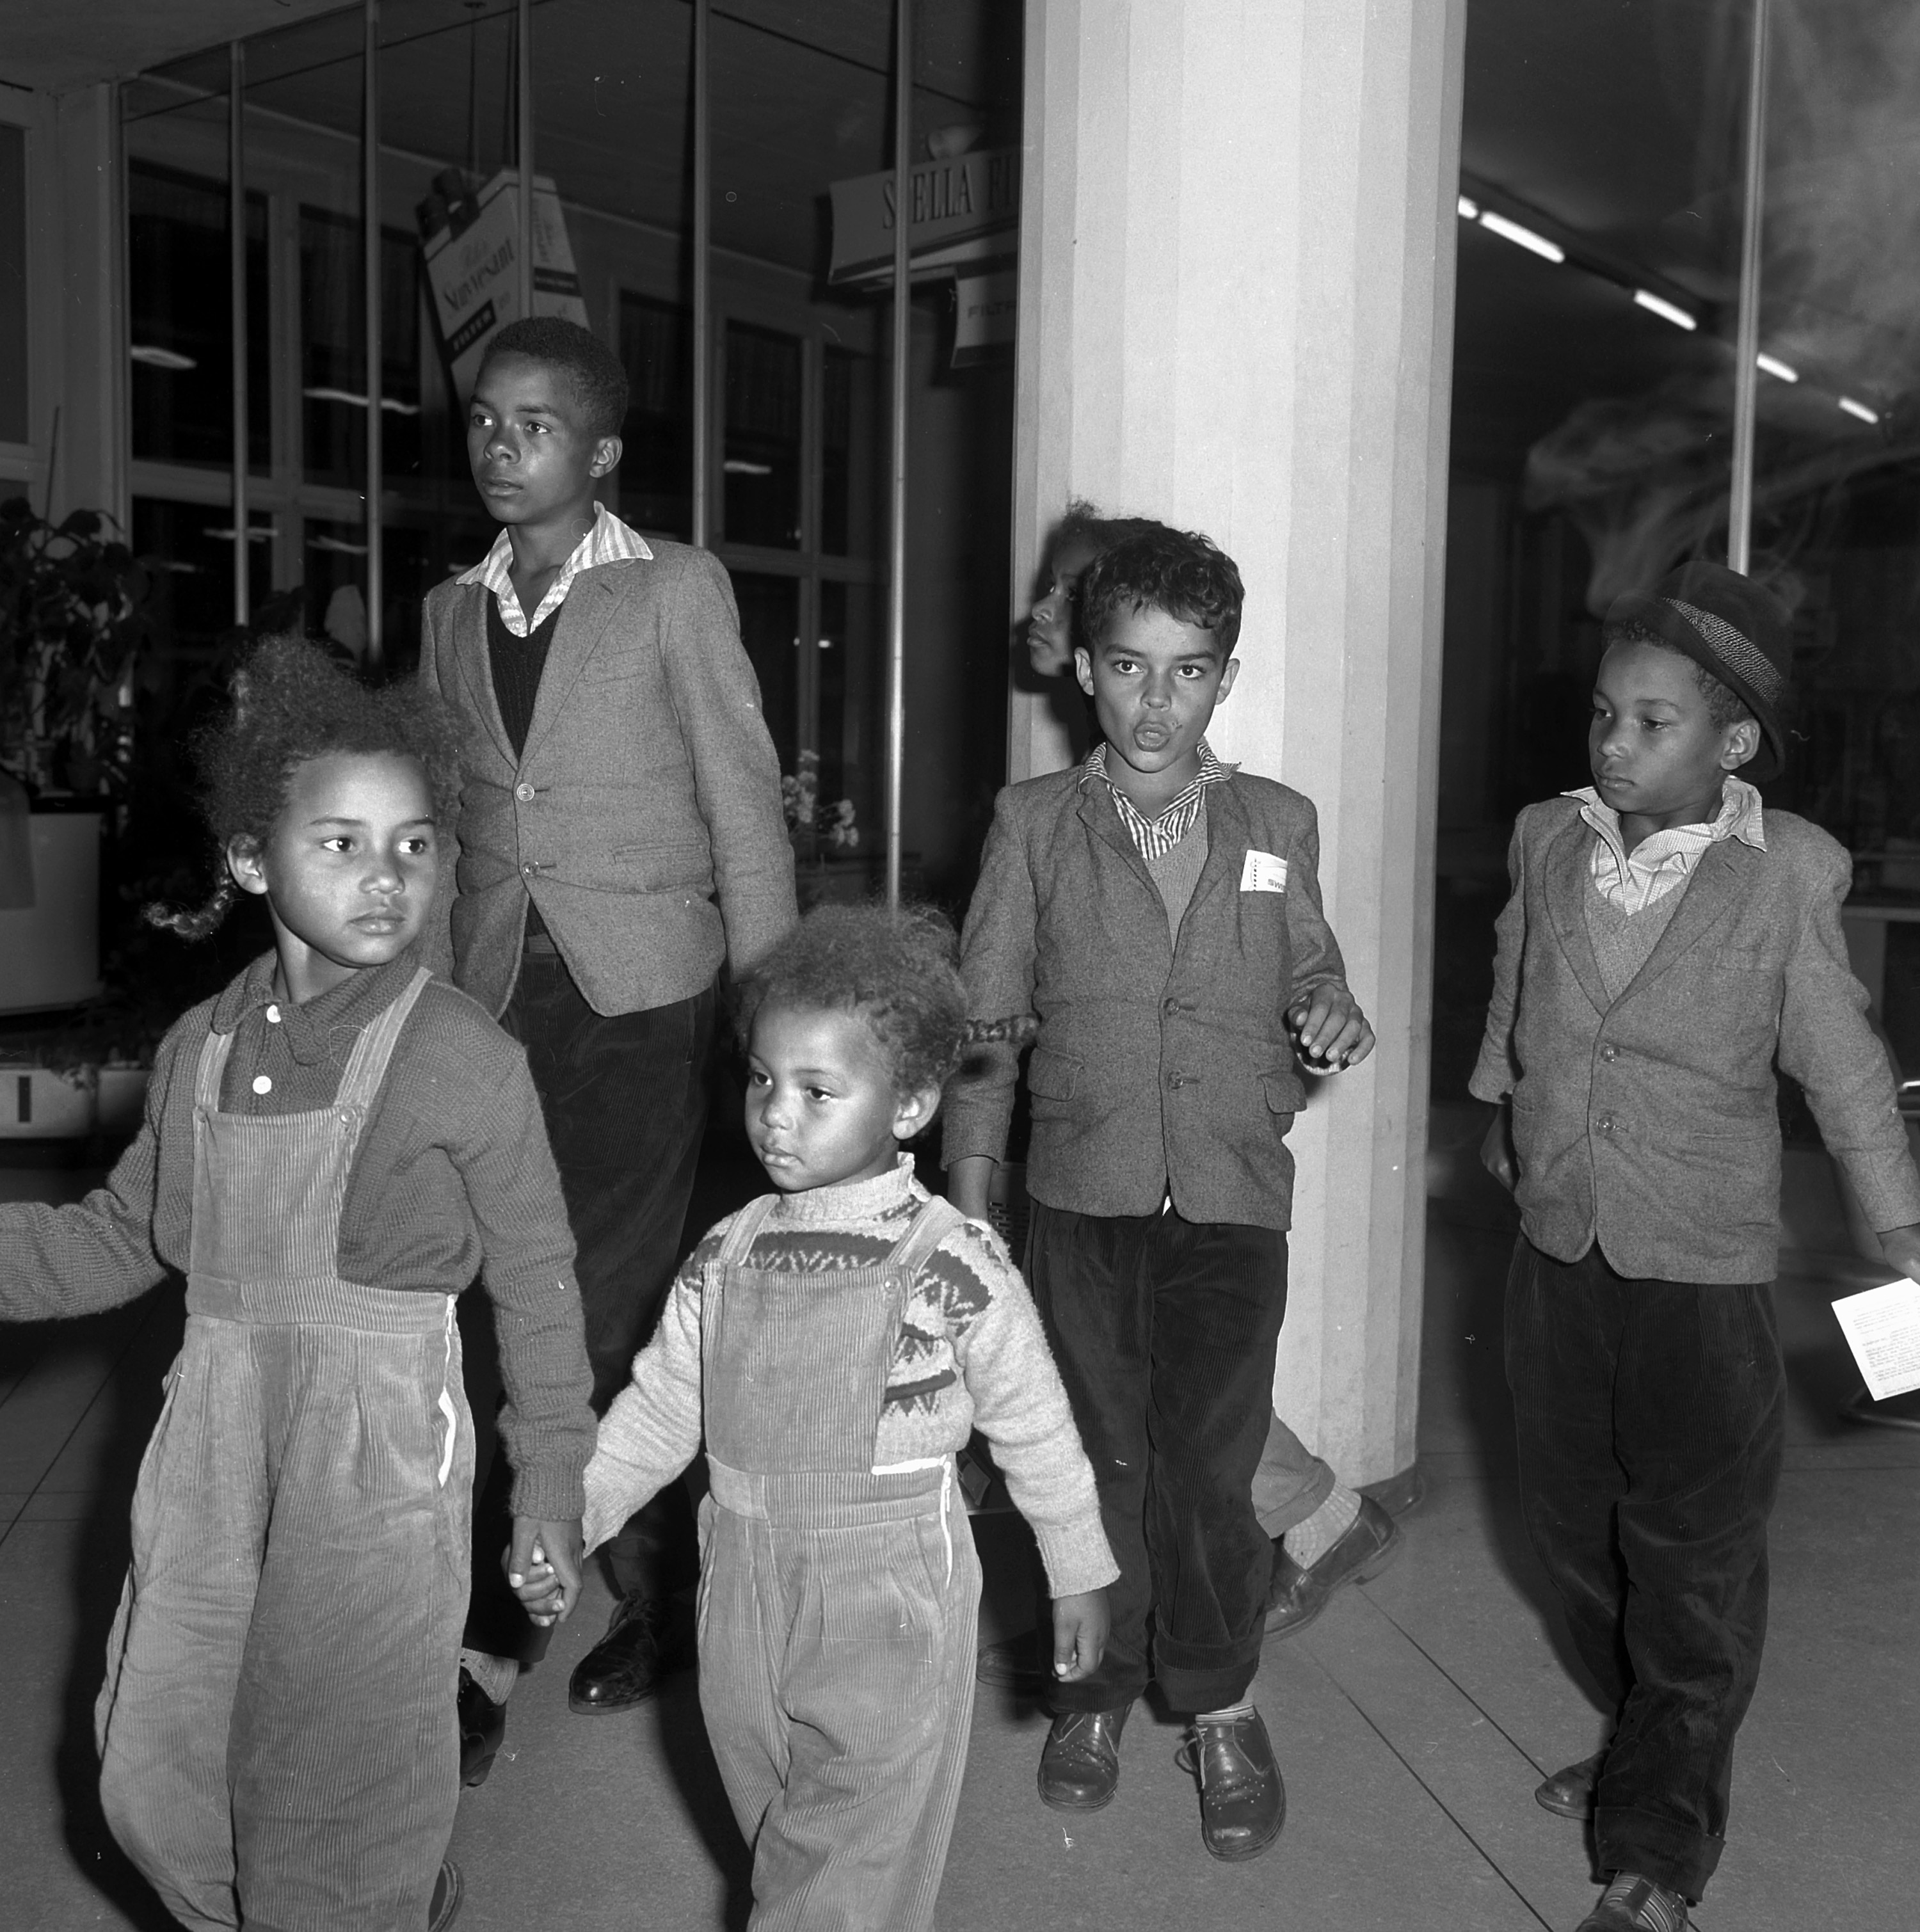 Coming home - children of Swiss emigrants arrive from Congo, 1961.